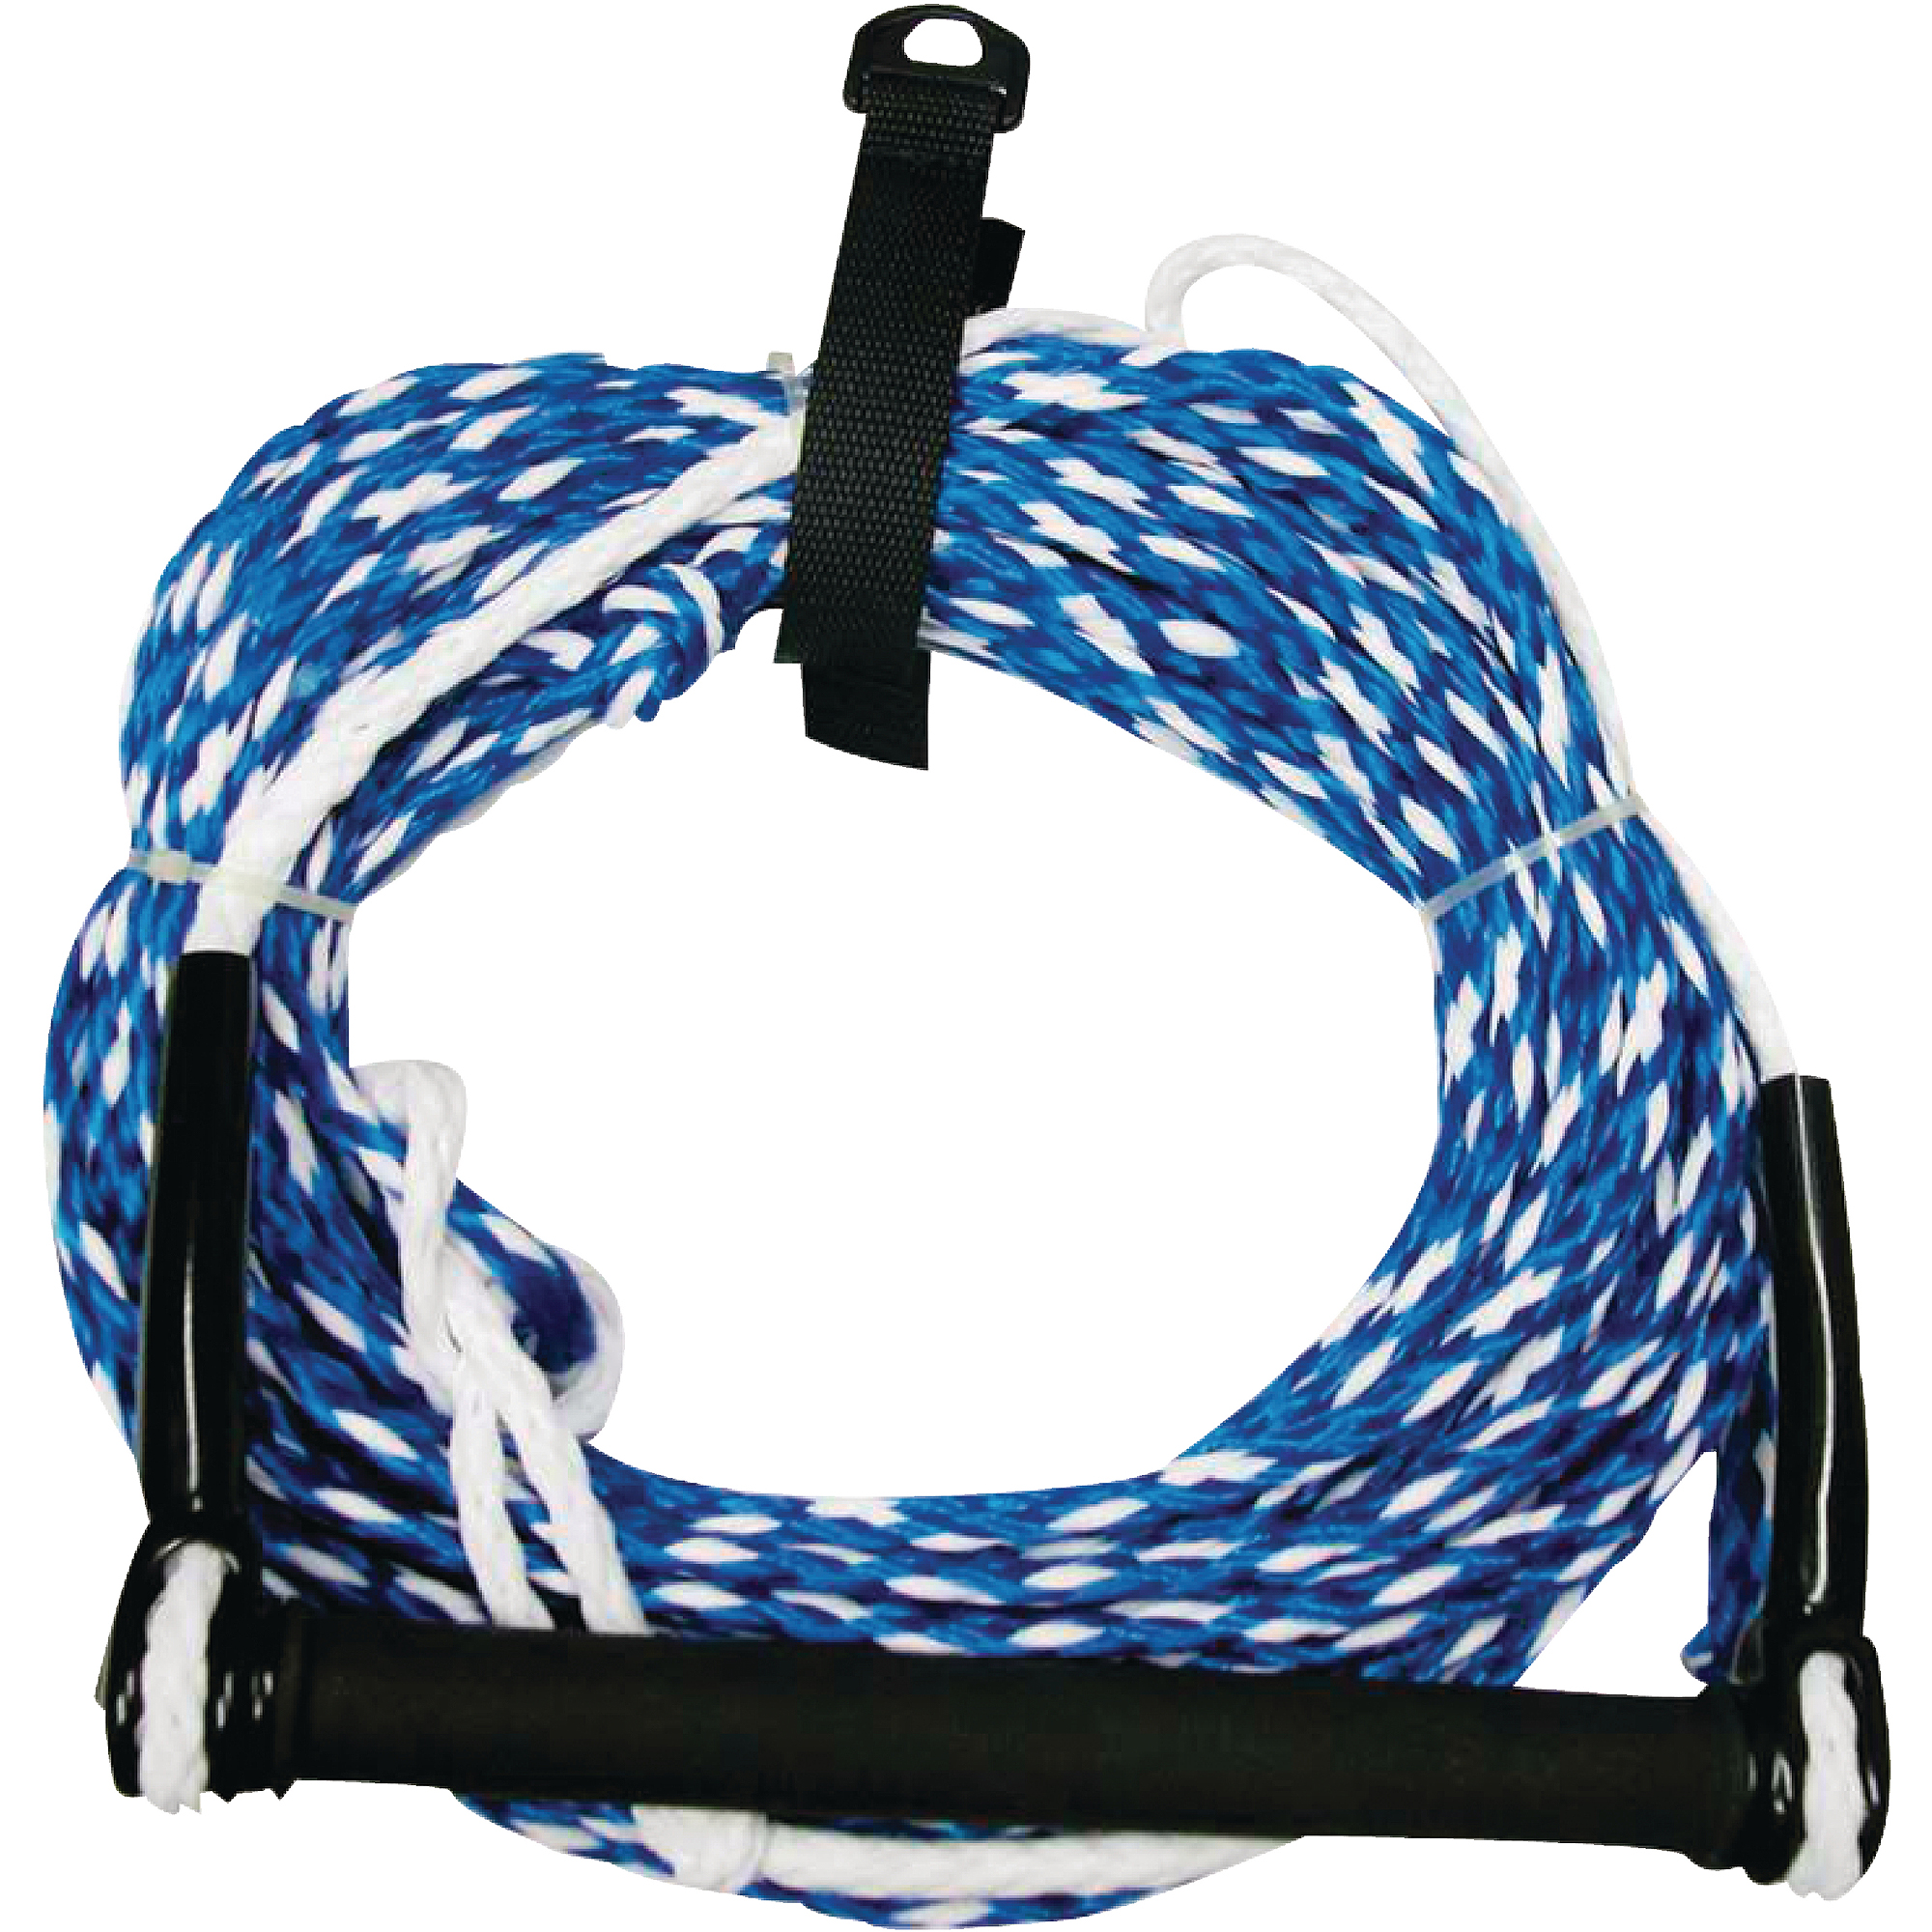 Seachoice Competition Ski Tow Rope, 75' by Seachoice Products